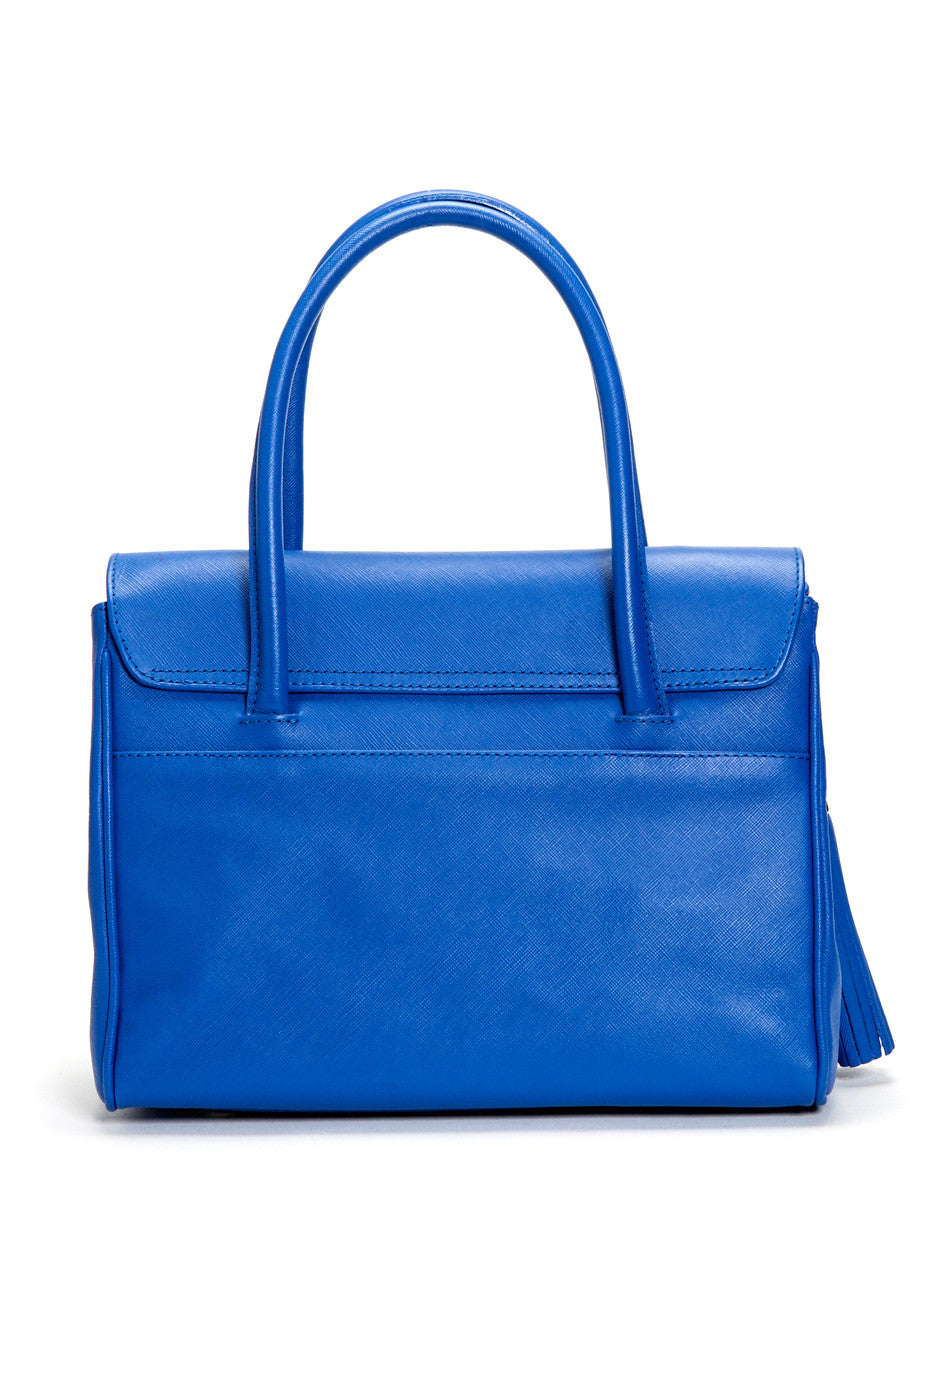 Cobalt Blue Saffiano Leather Christy Mini Tote | Back View | Mel Boteri